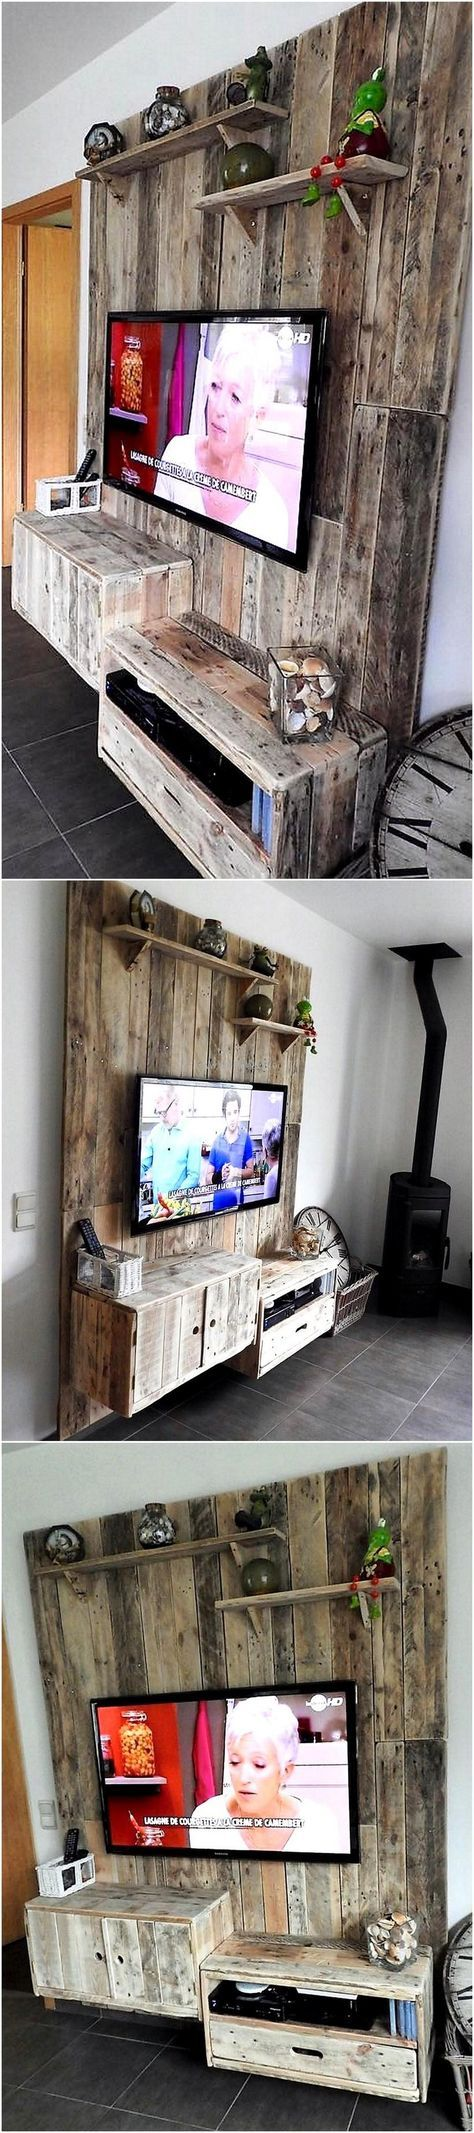 Easy To Make Wood Pallet Furniture Ideas | Pallet tv stands ...